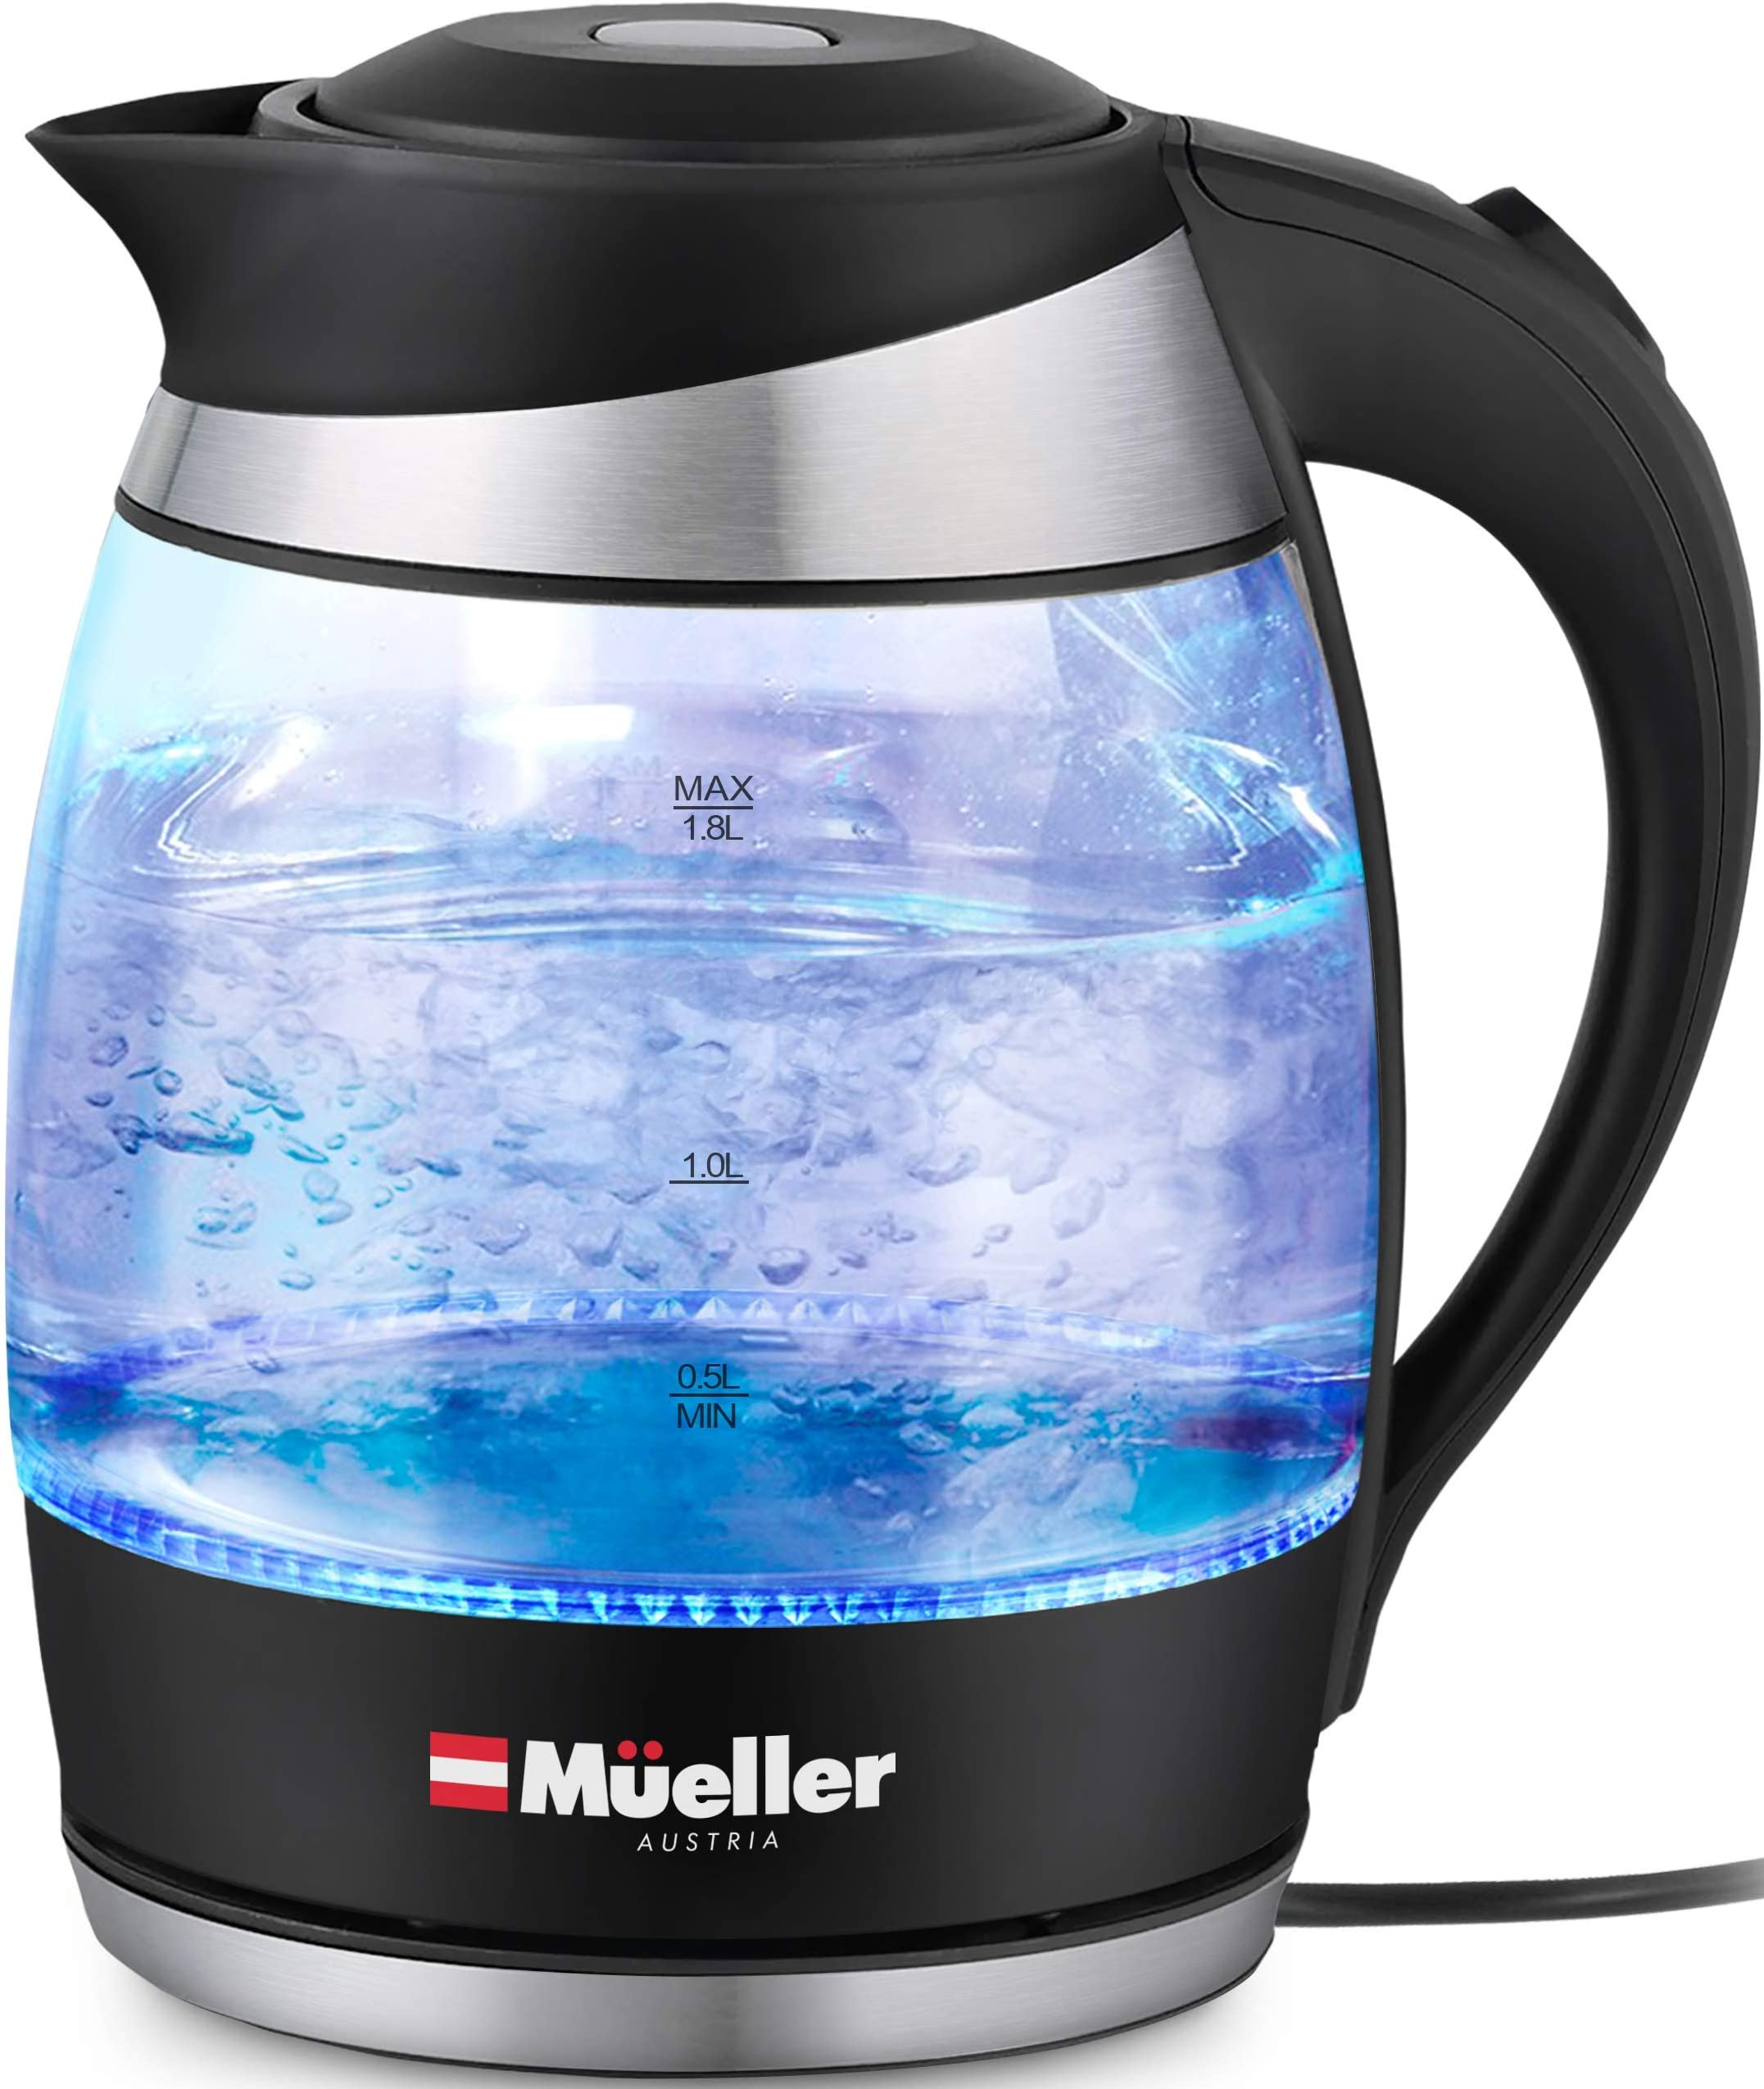 Mueller Premium 1500W Electric Kettle with SpeedBoil Tech, 1.8 Liter Cordless with LED Light, Borosilicate Glass, Auto Shut-Off and Boil-Dry Protection